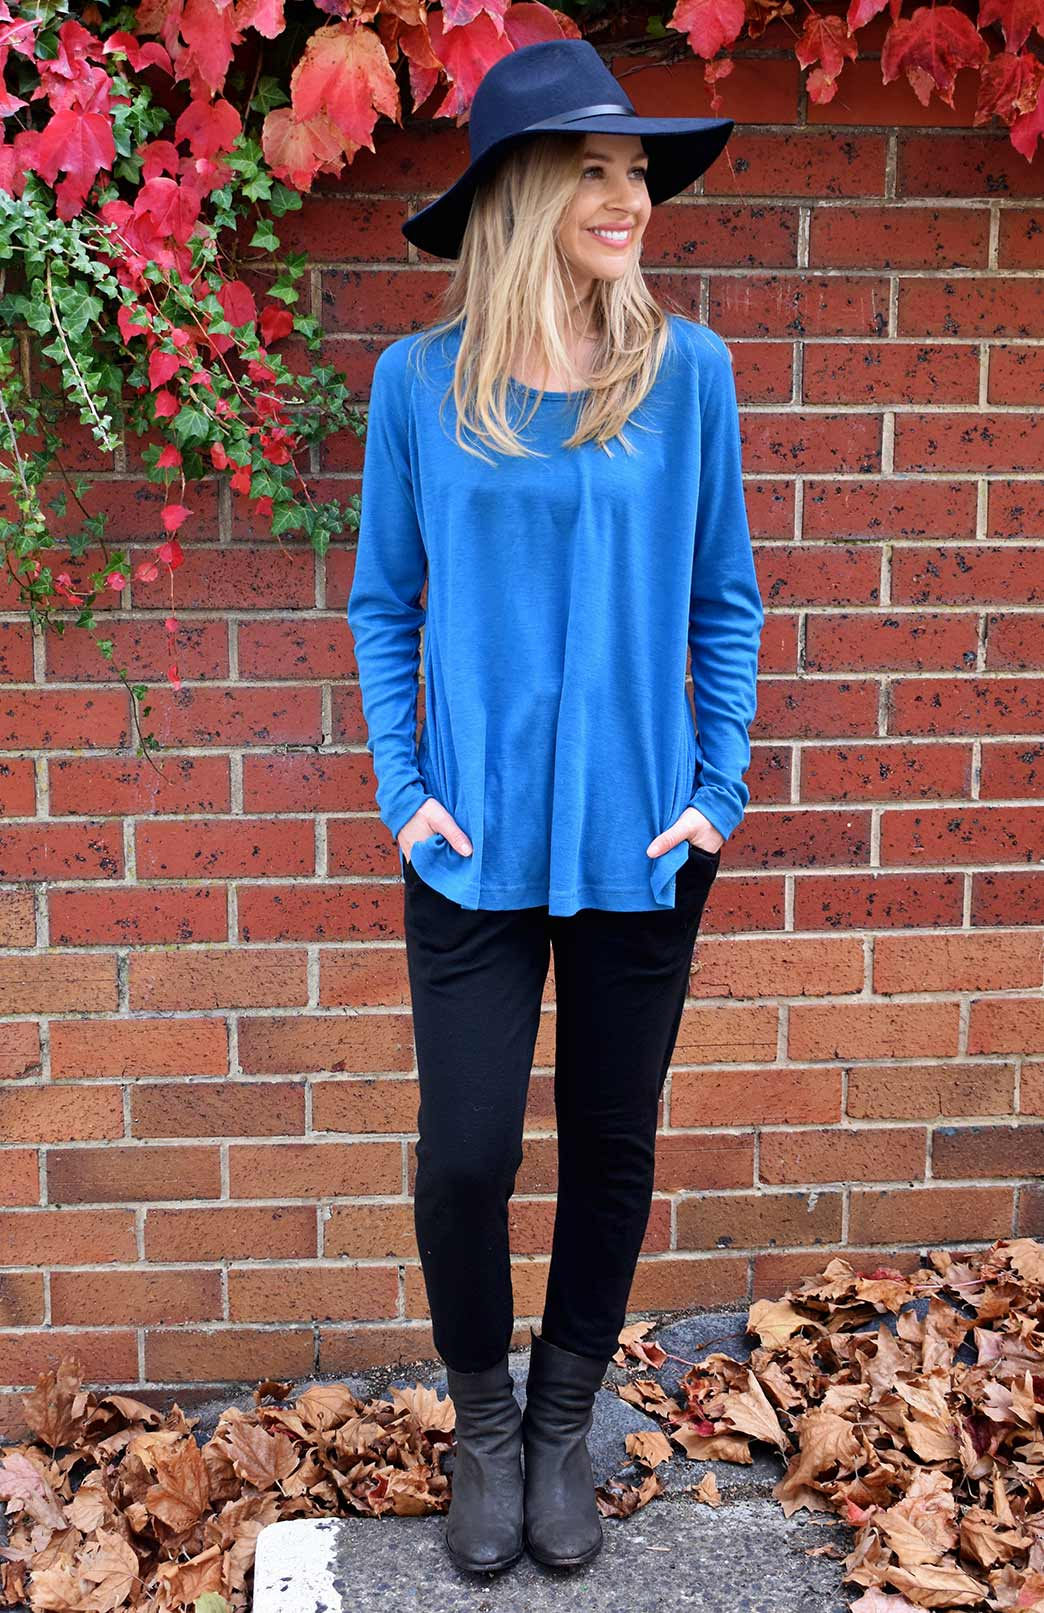 Rana Top - Women's Teal Pure Merino Wool Top with Long Sleeves, Scooped Neckline and Curved Hem - Smitten Merino Tasmania Australia